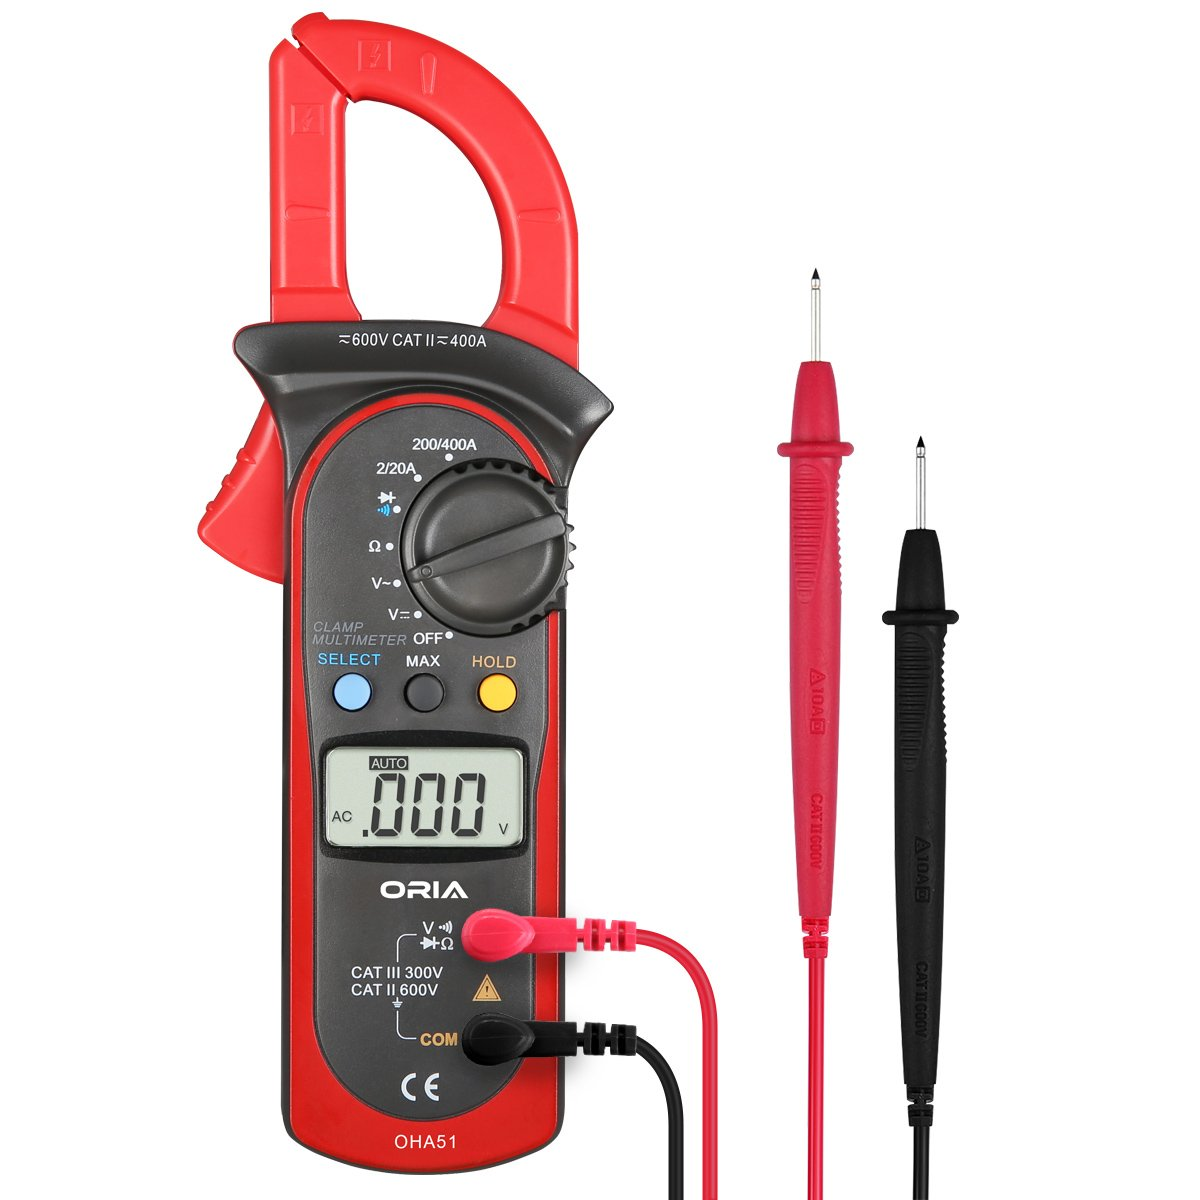 ORIA Digital Clamp Multimeter, Auto Ranging Measures Tester, Handheld Multimeter with Voltage, AC Current, Diodes and Resistance Test, Auto Multi Tester with Test Leads, AAA Battery Included